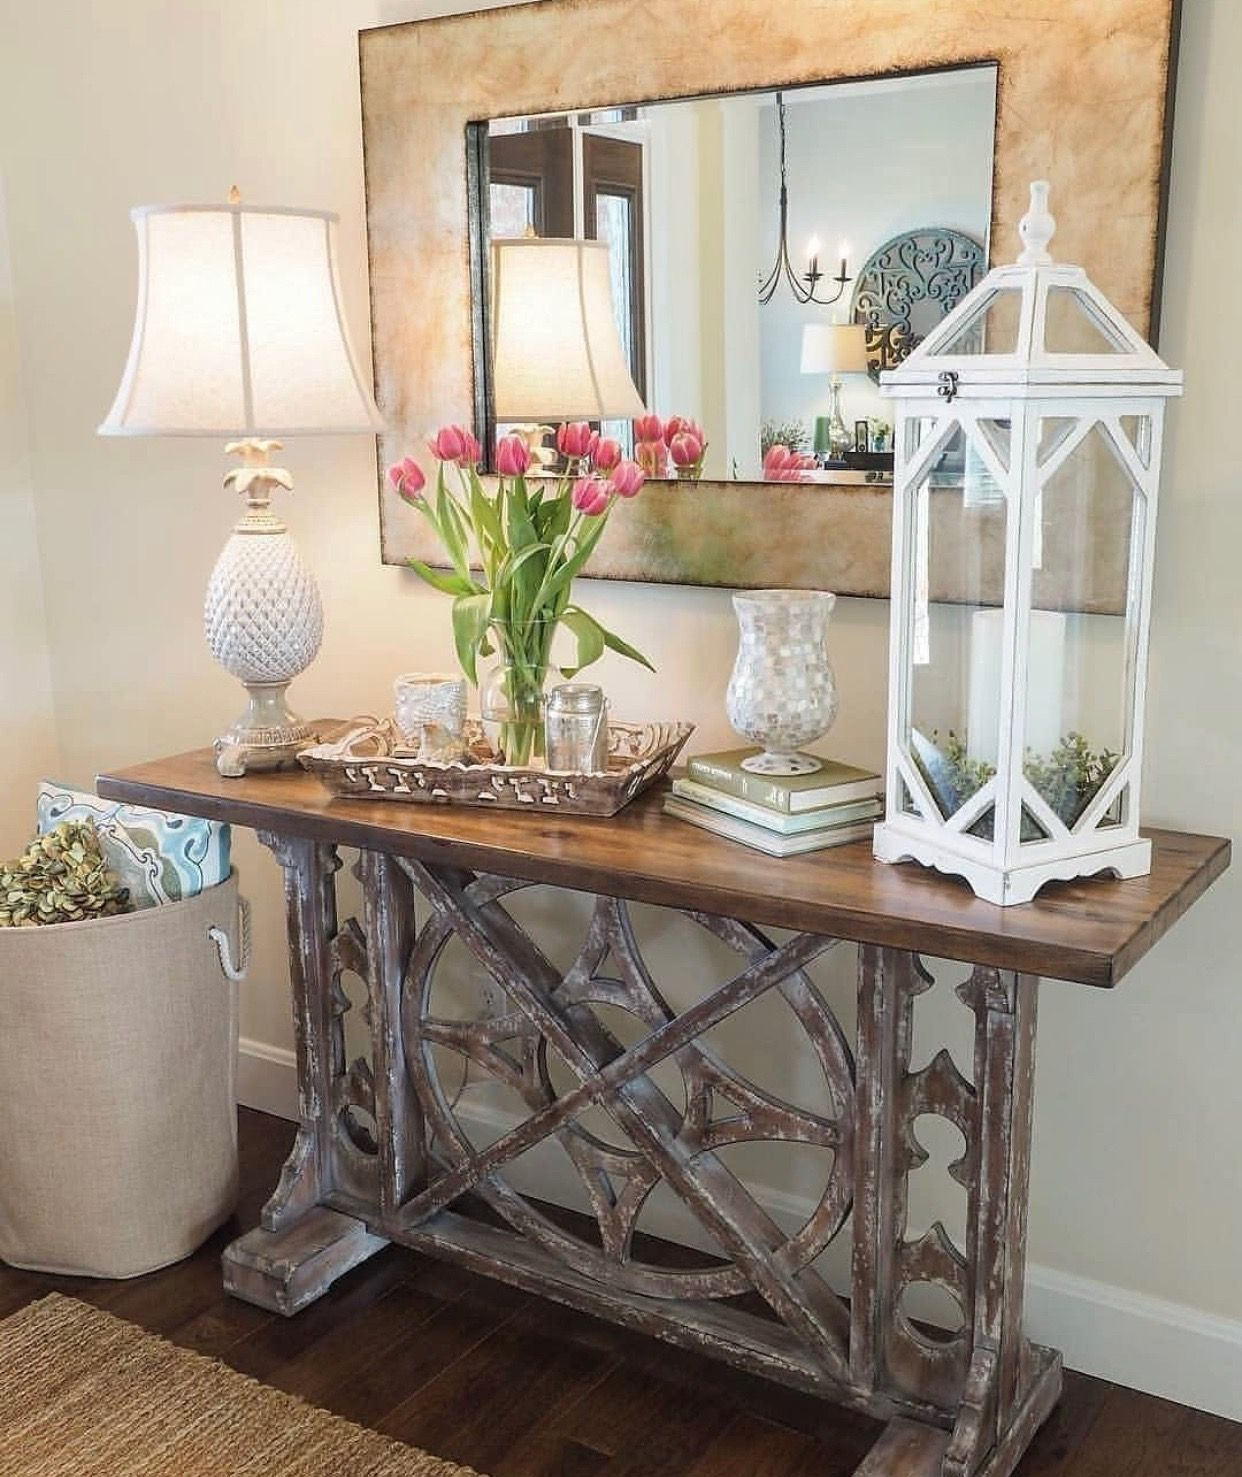 pin by neatfreak on future home hall table decor on small entryway console table decor ideas make a statement with your home s entryway id=44818